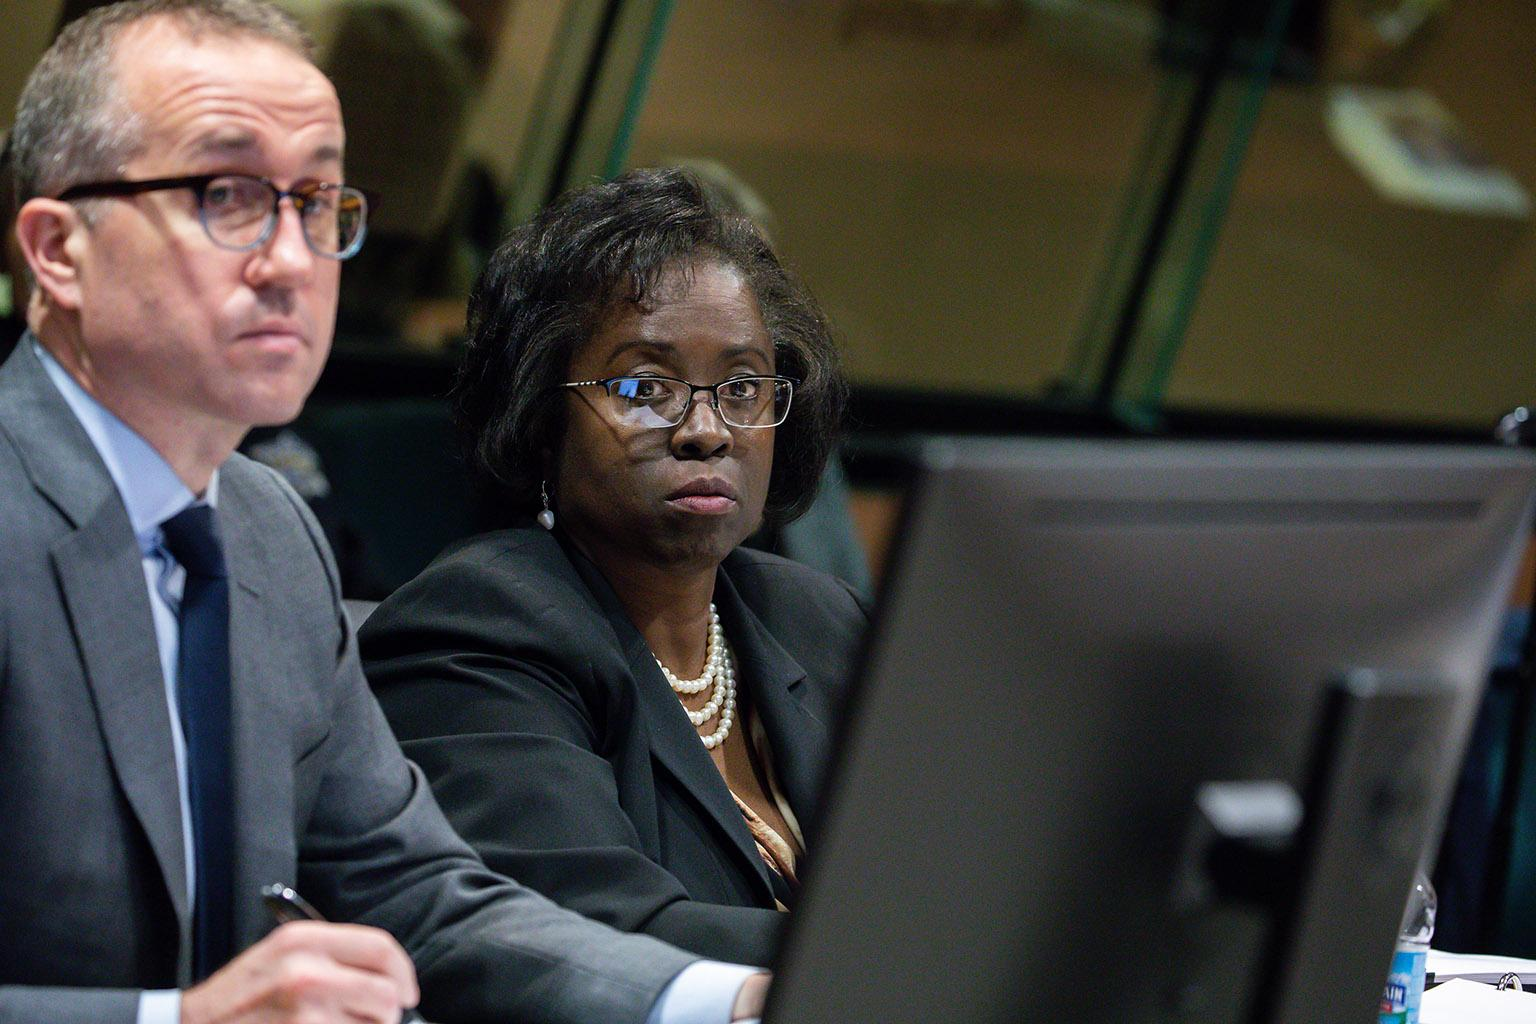 Special prosecutor Patricia Brown Holmes and assistant Brian Watson on Tuesday, Dec. 4, 2018. (Zbigniew Bzdak / Chicago Tribune / Pool)